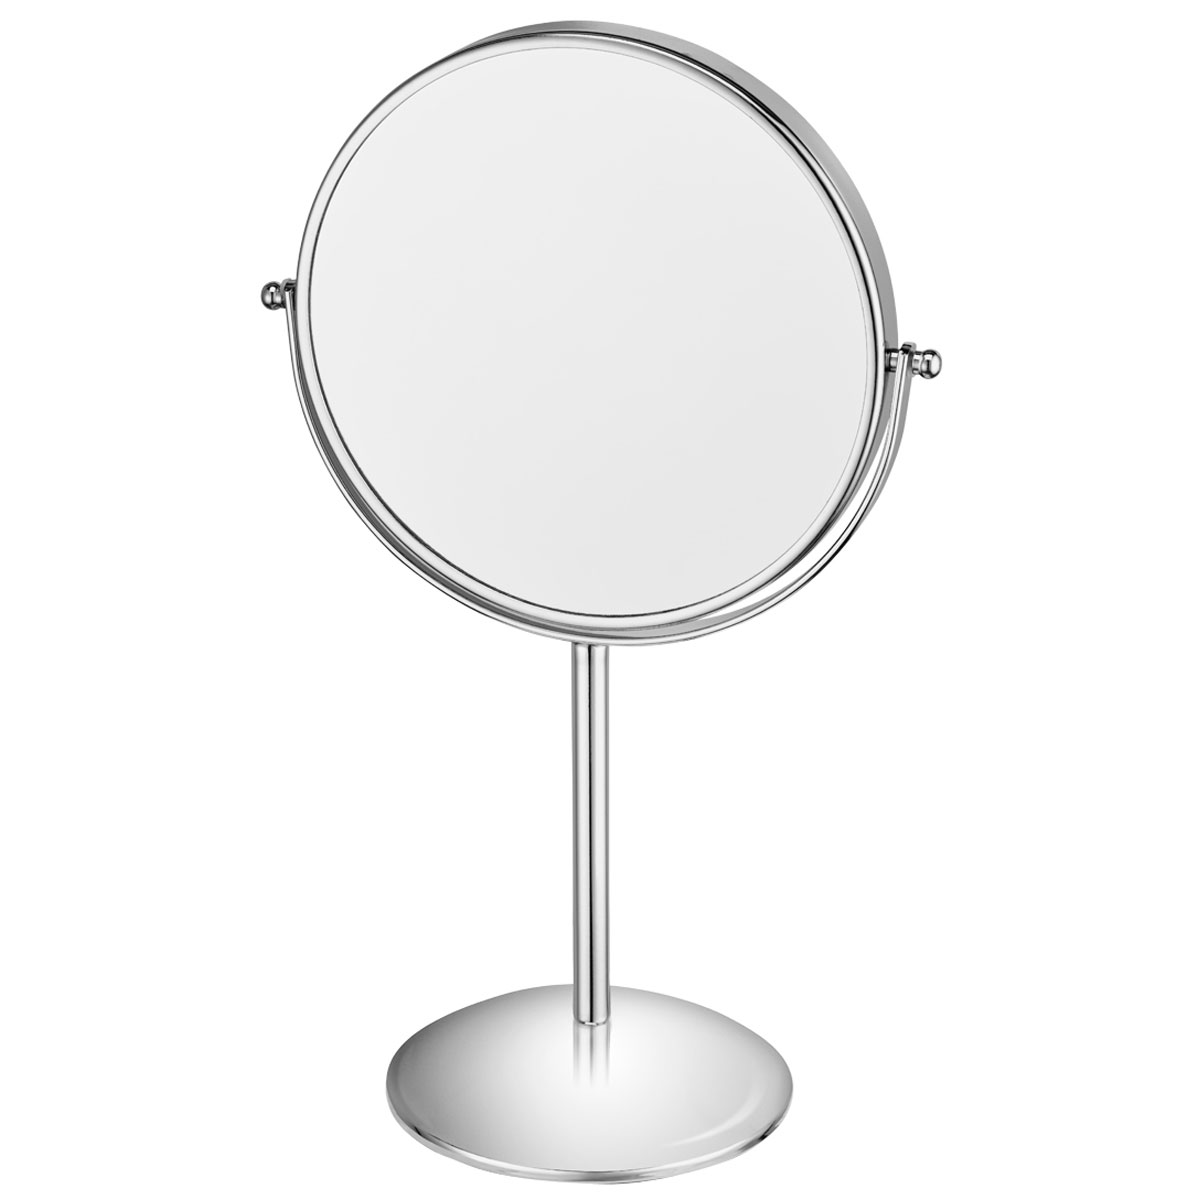 Conair 41518w 8 non lighted vanity mirror 1x 5x magnification conair 41518w 8 non lighted vanity mirror 1x 5x magnification chrome 3 per case price per each mozeypictures Gallery